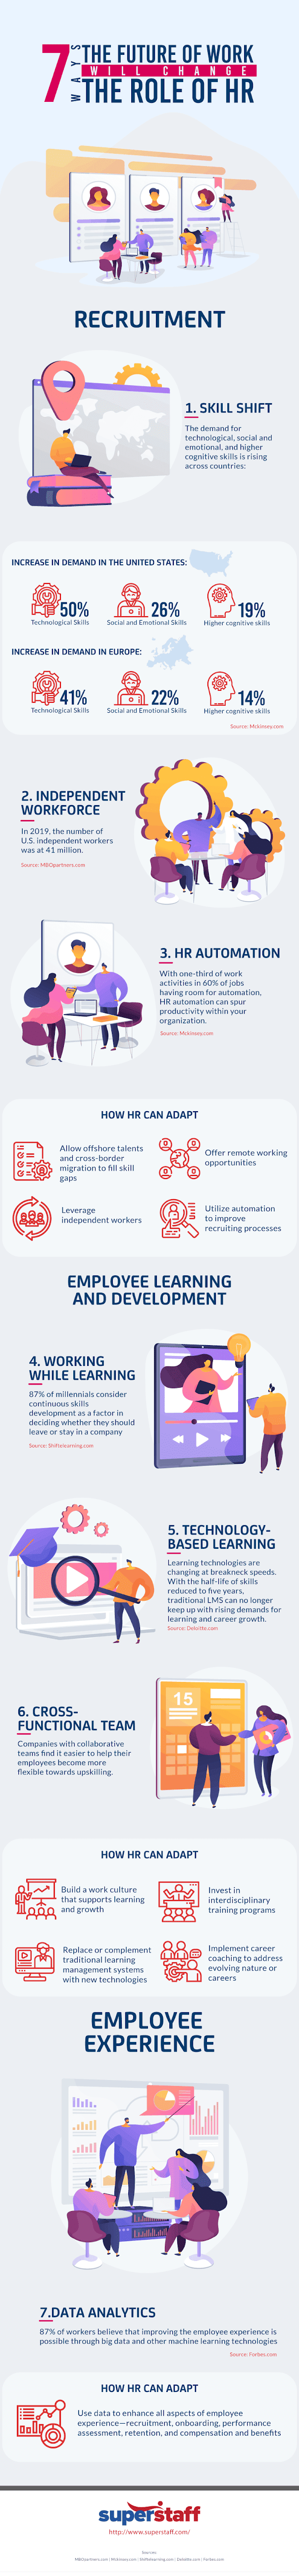 7 Ways the Future of Work Will Change the Role of HR #infographic